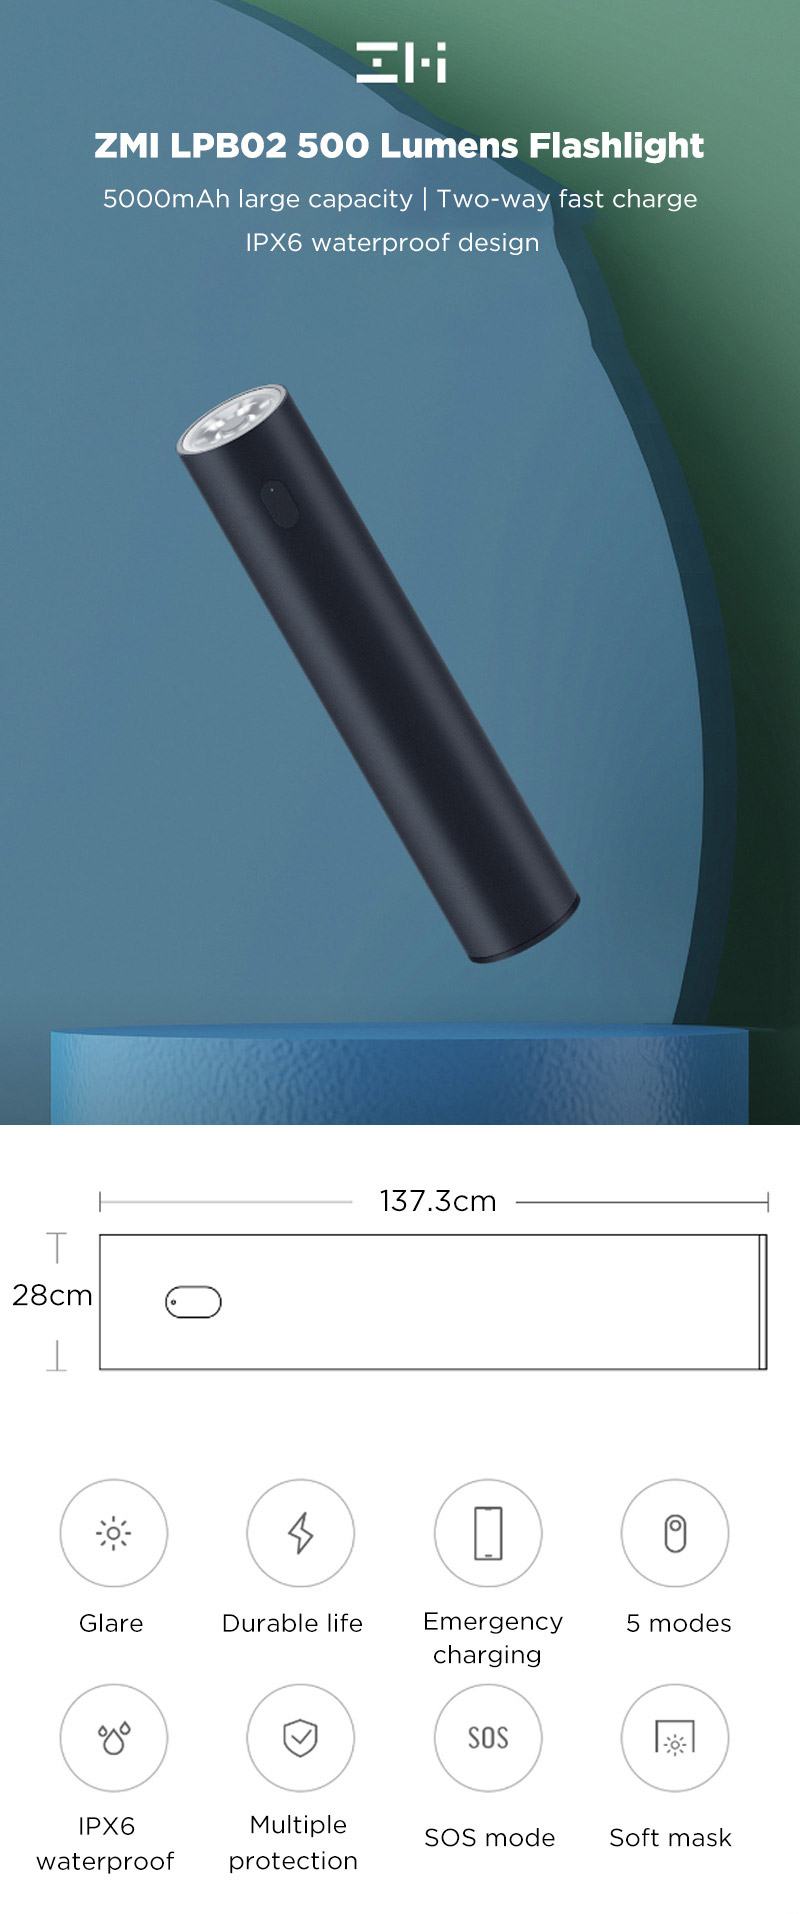 Xiaomi ZMI LPB02 5000mAh Power Bank Flashlight.jpg